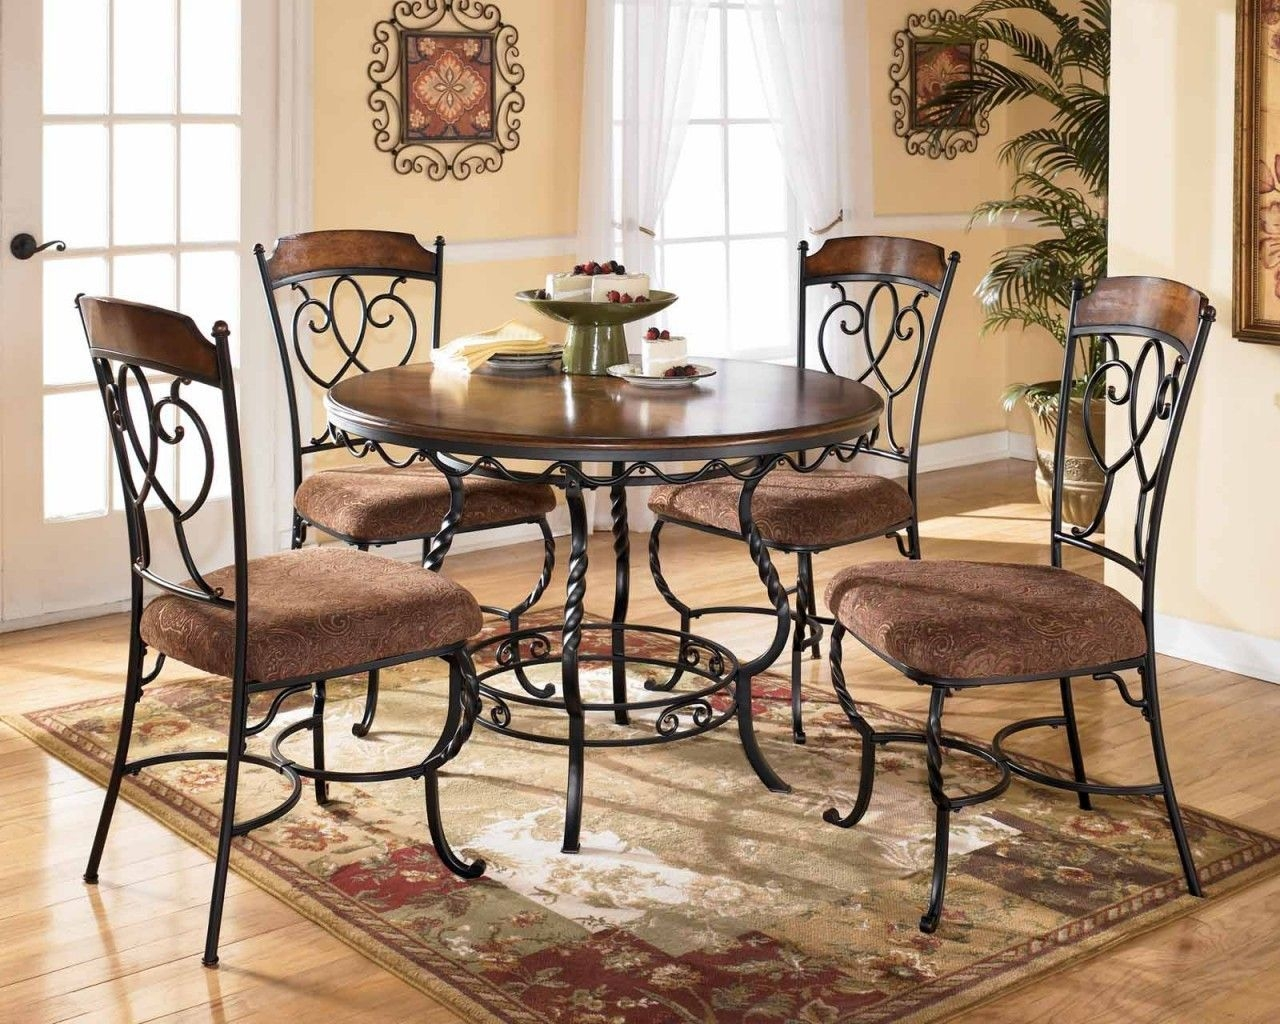 Kitchen Tables And Chairs Sets   Table Dining Chairs With Cushion Fabric For Macy Kitchen